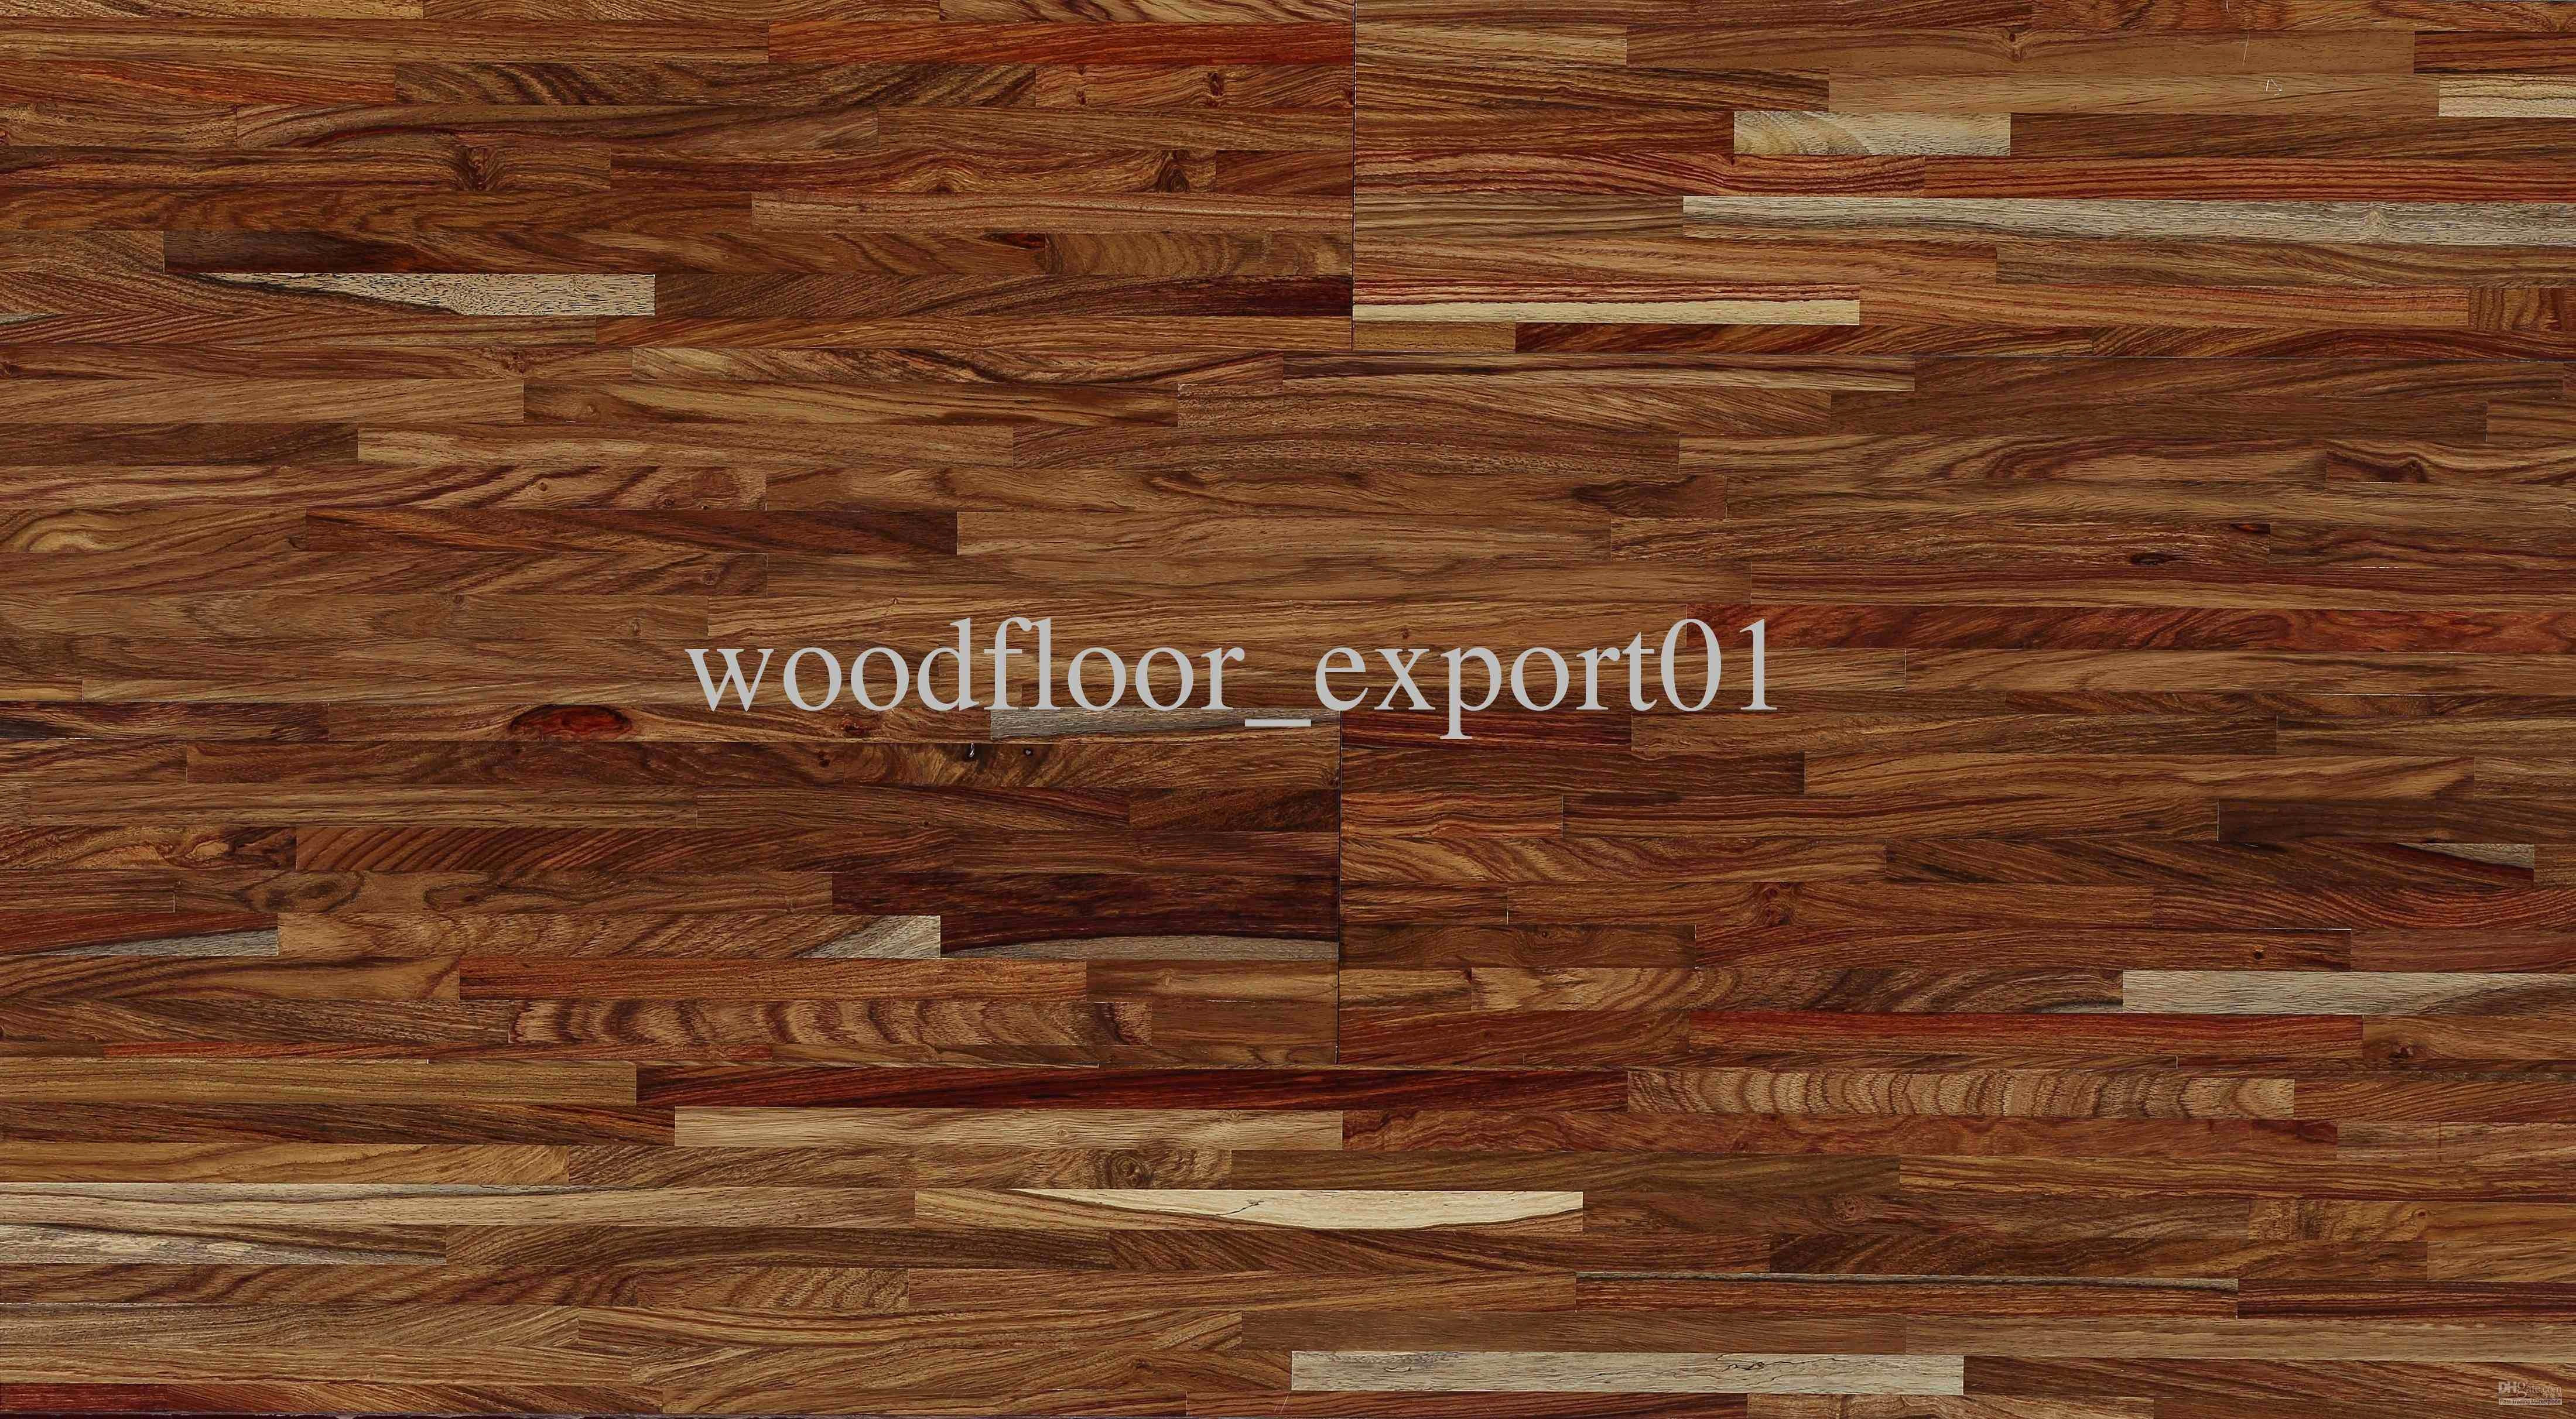 hardwood floor borders ideas of 15 unique types of hardwood flooring image dizpos com with types of hardwood flooring awesome 50 inspirational sanding and refinishing hardwood floors graphics image of 15